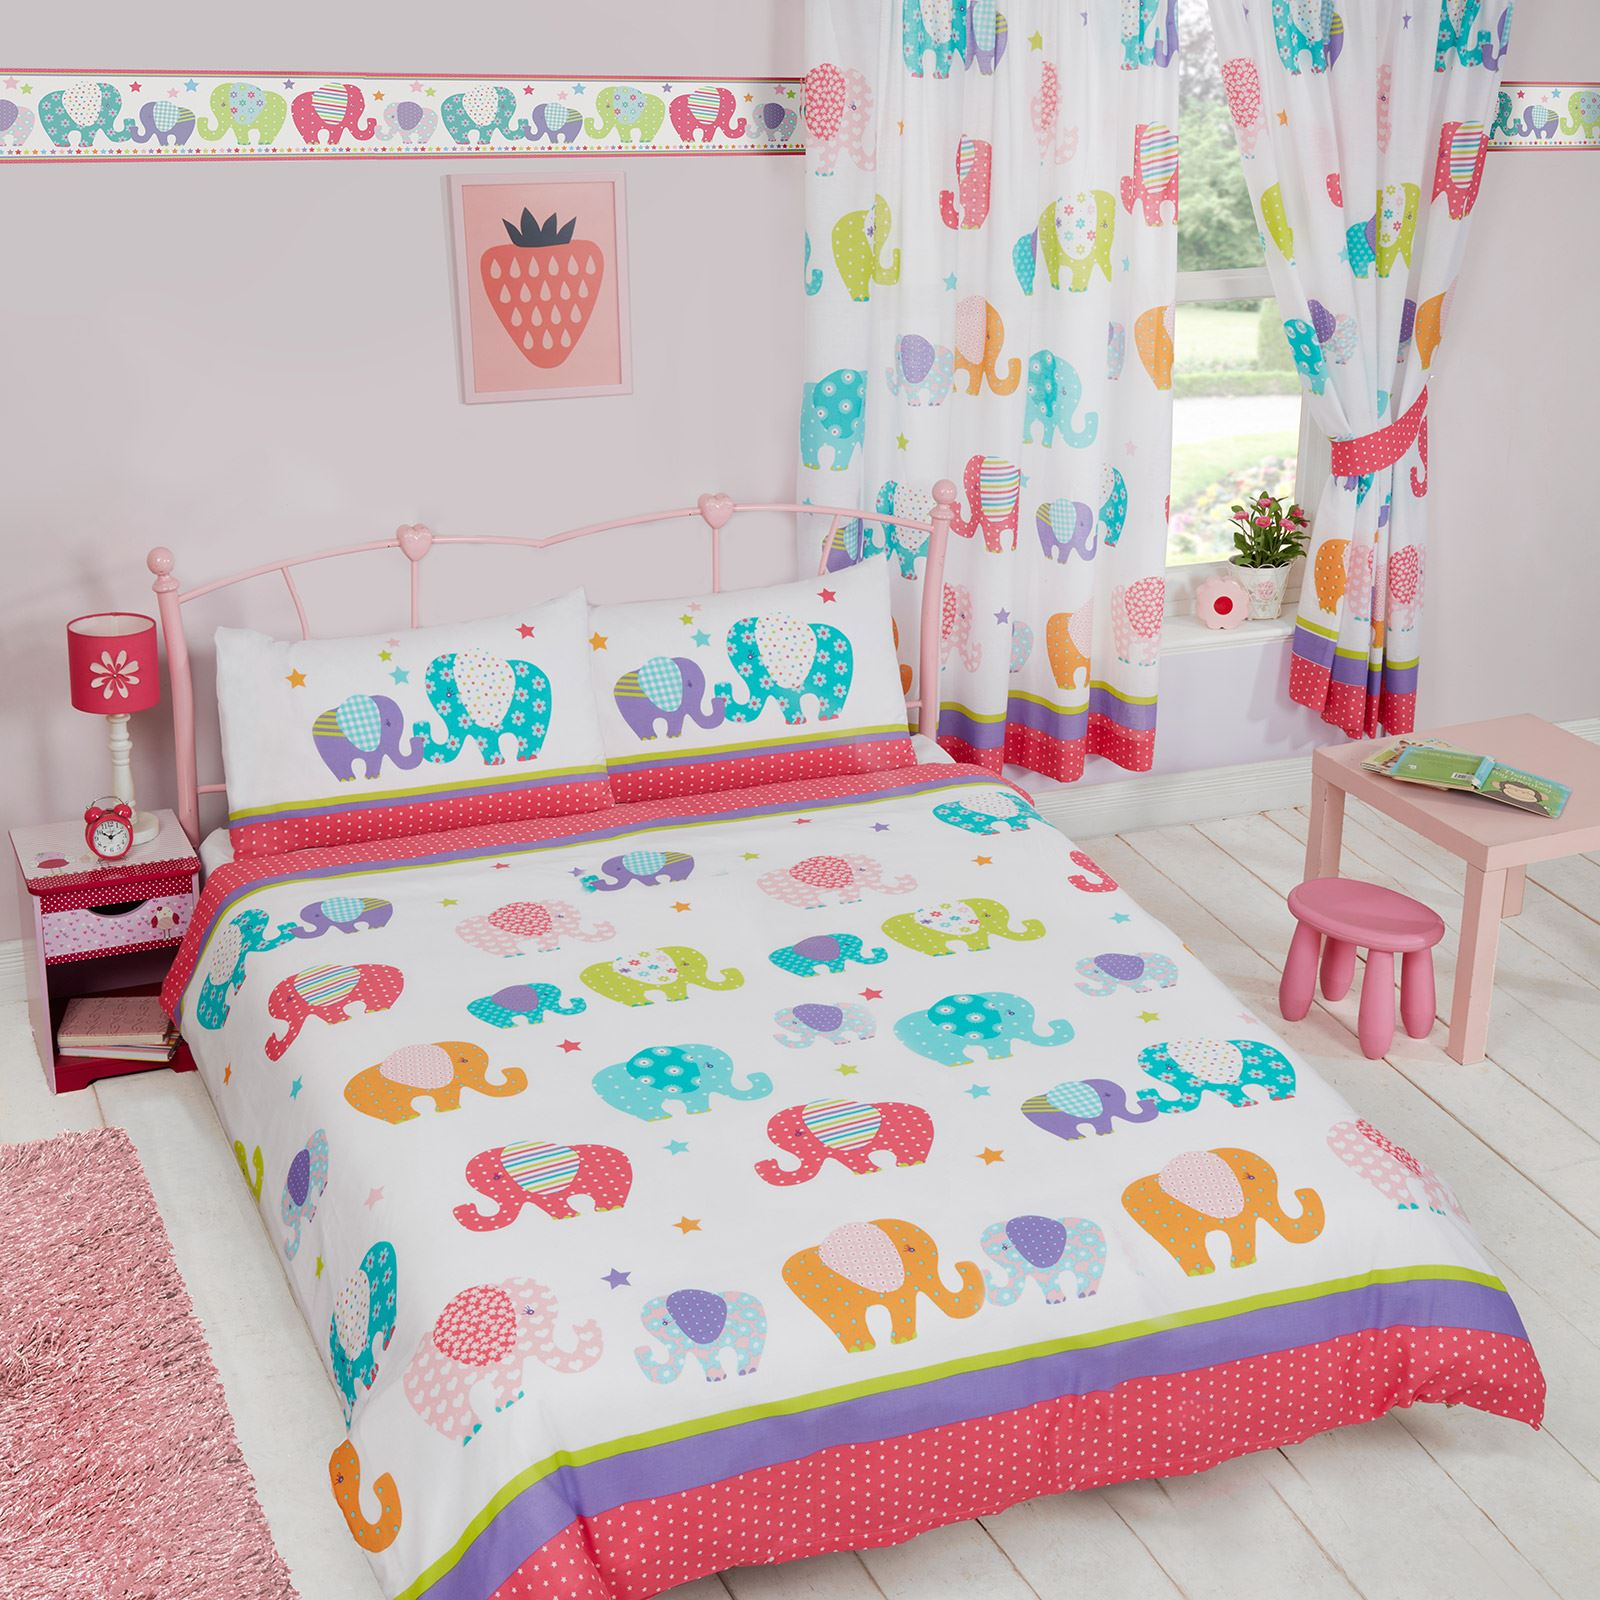 kinder doppelbett bettw sche sets dinosaur armee v gel. Black Bedroom Furniture Sets. Home Design Ideas